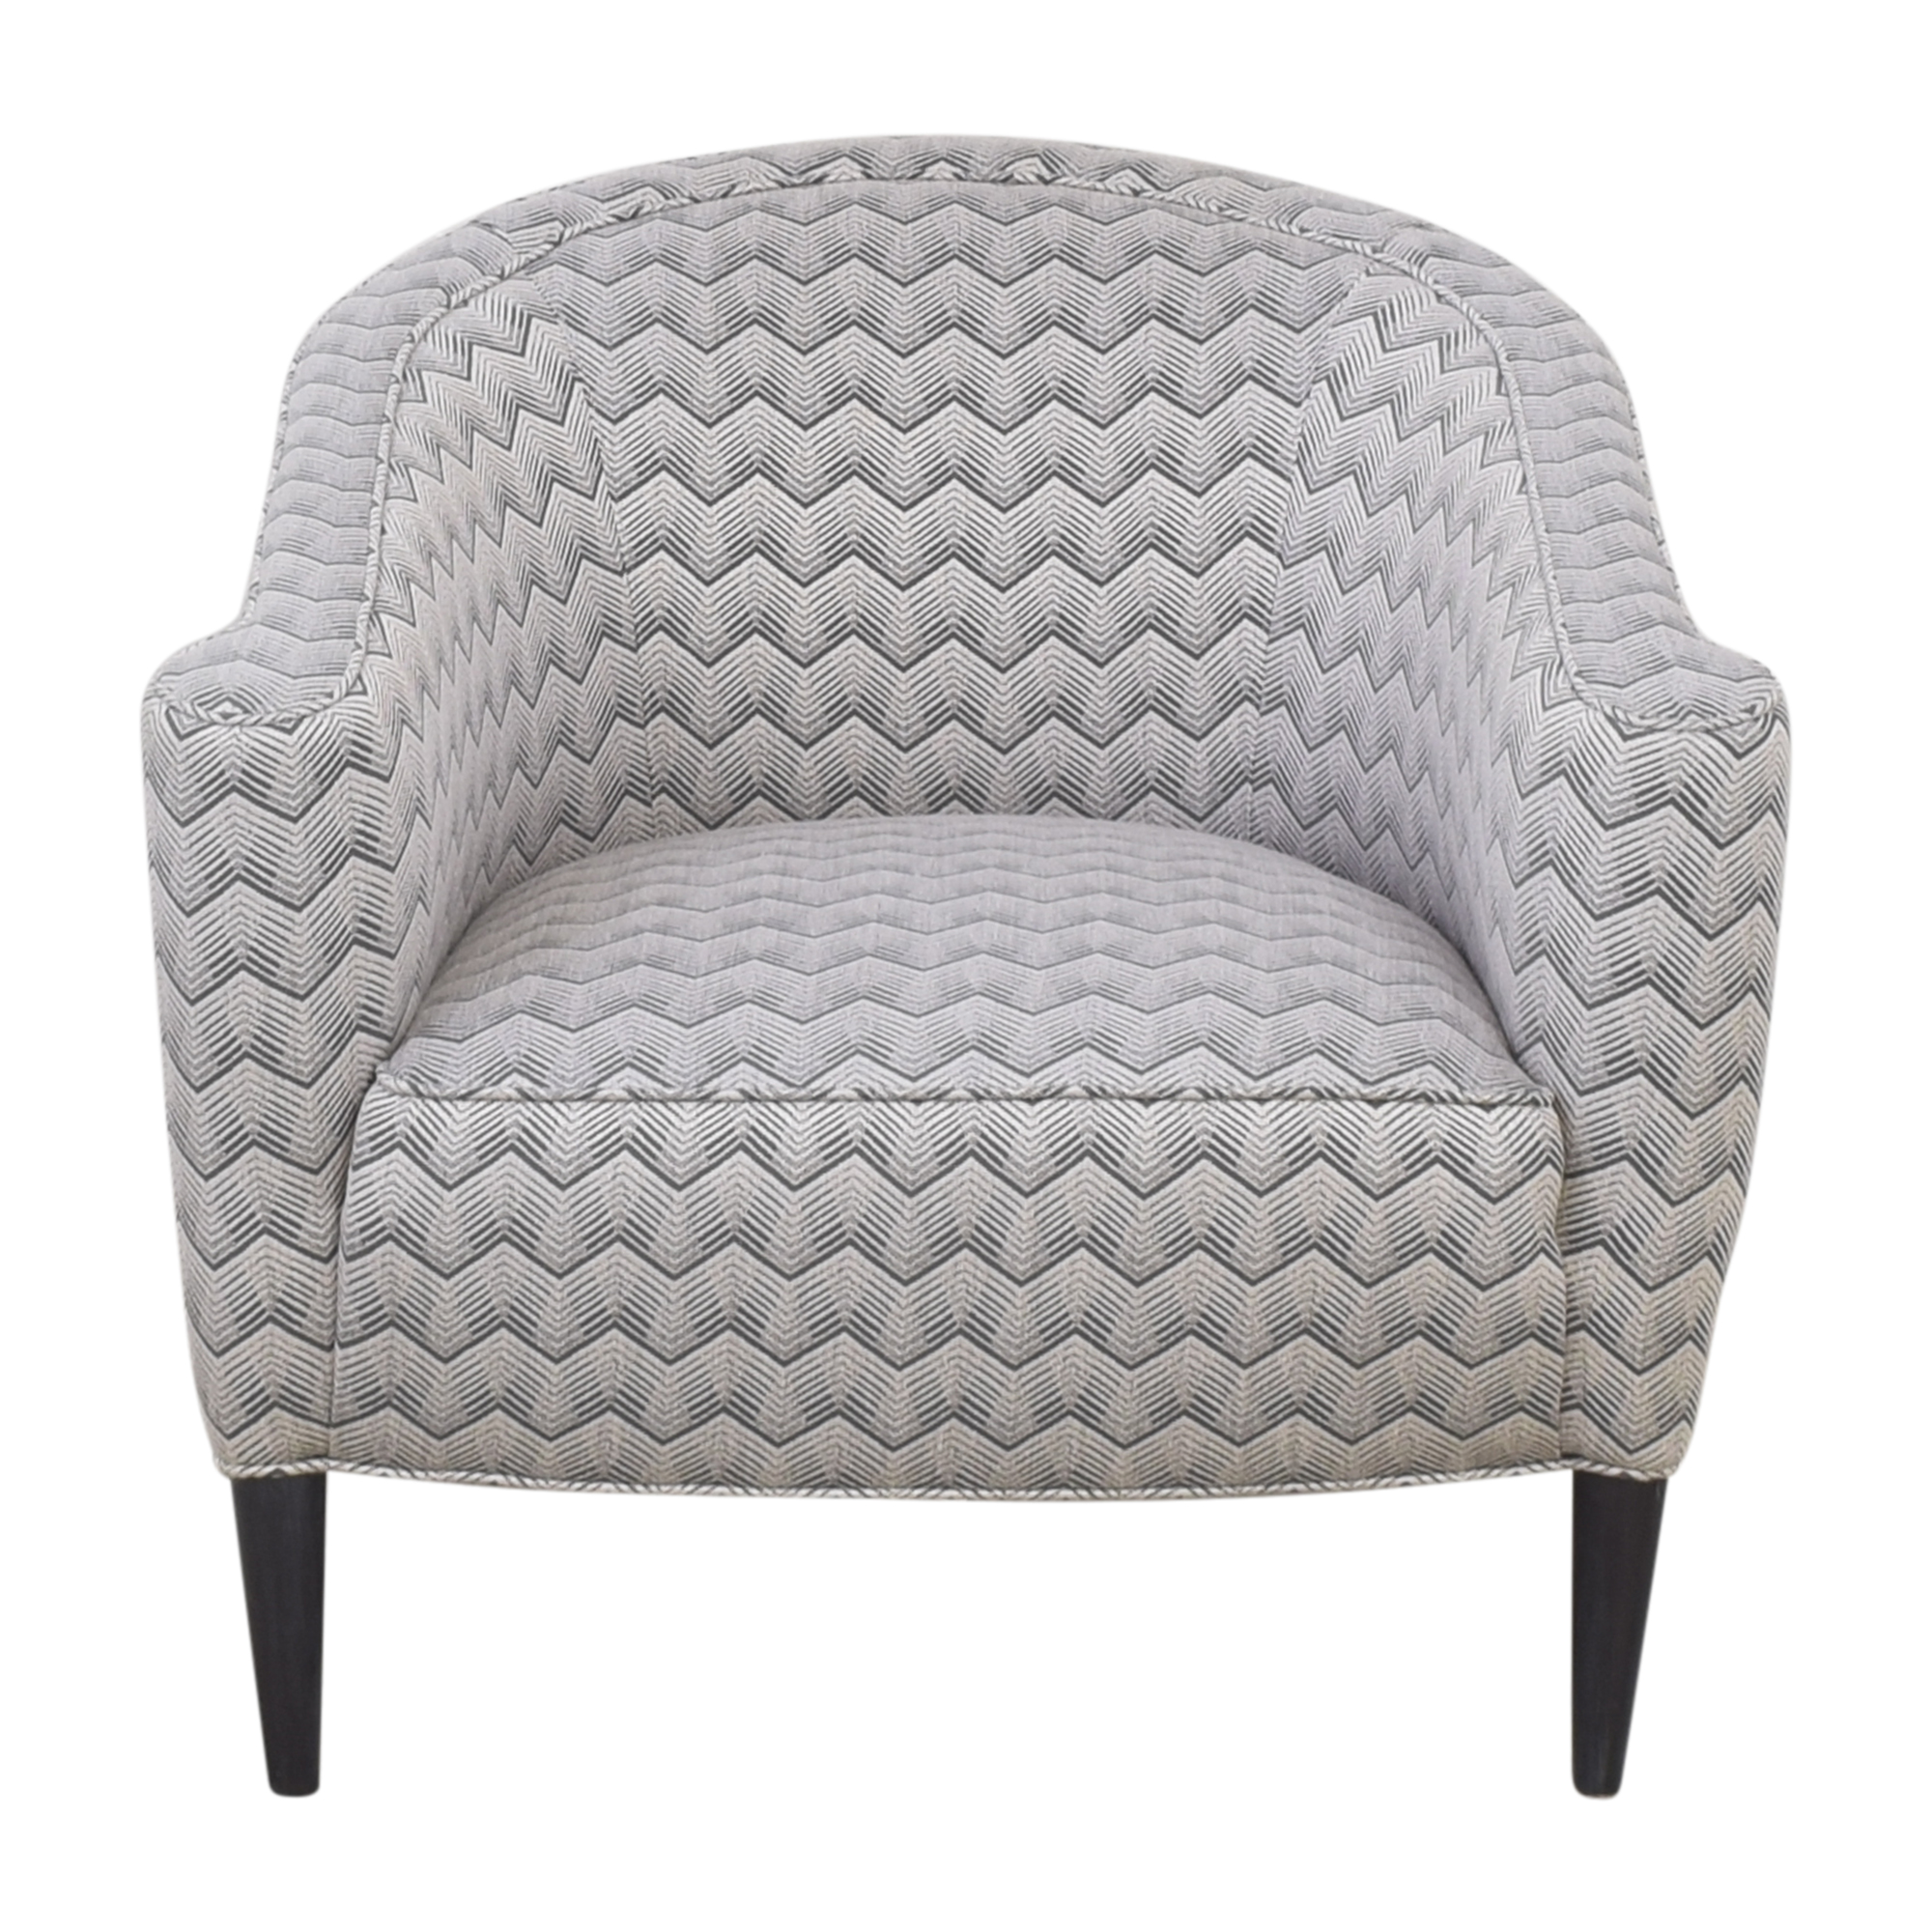 shop CR Laine CR Laine Sotheby Barrel Chair  online